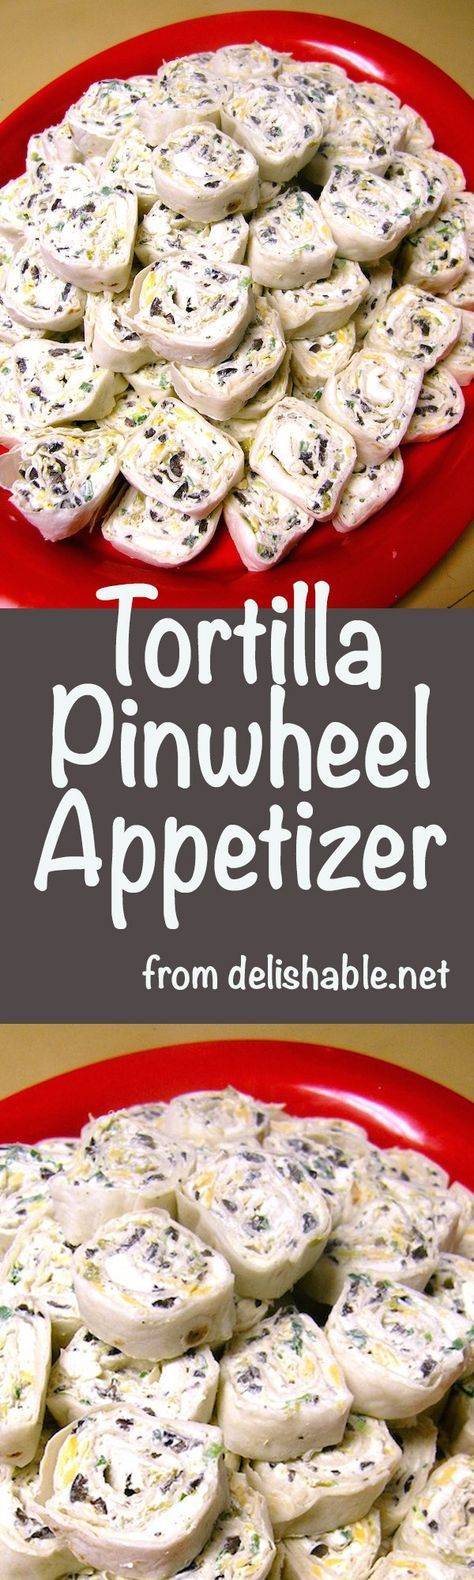 The FUN thing about Tortilla Pinwheel Appetizers is there are so many ways to make them. And they are always a hit at any party or potluck!   delishable.net